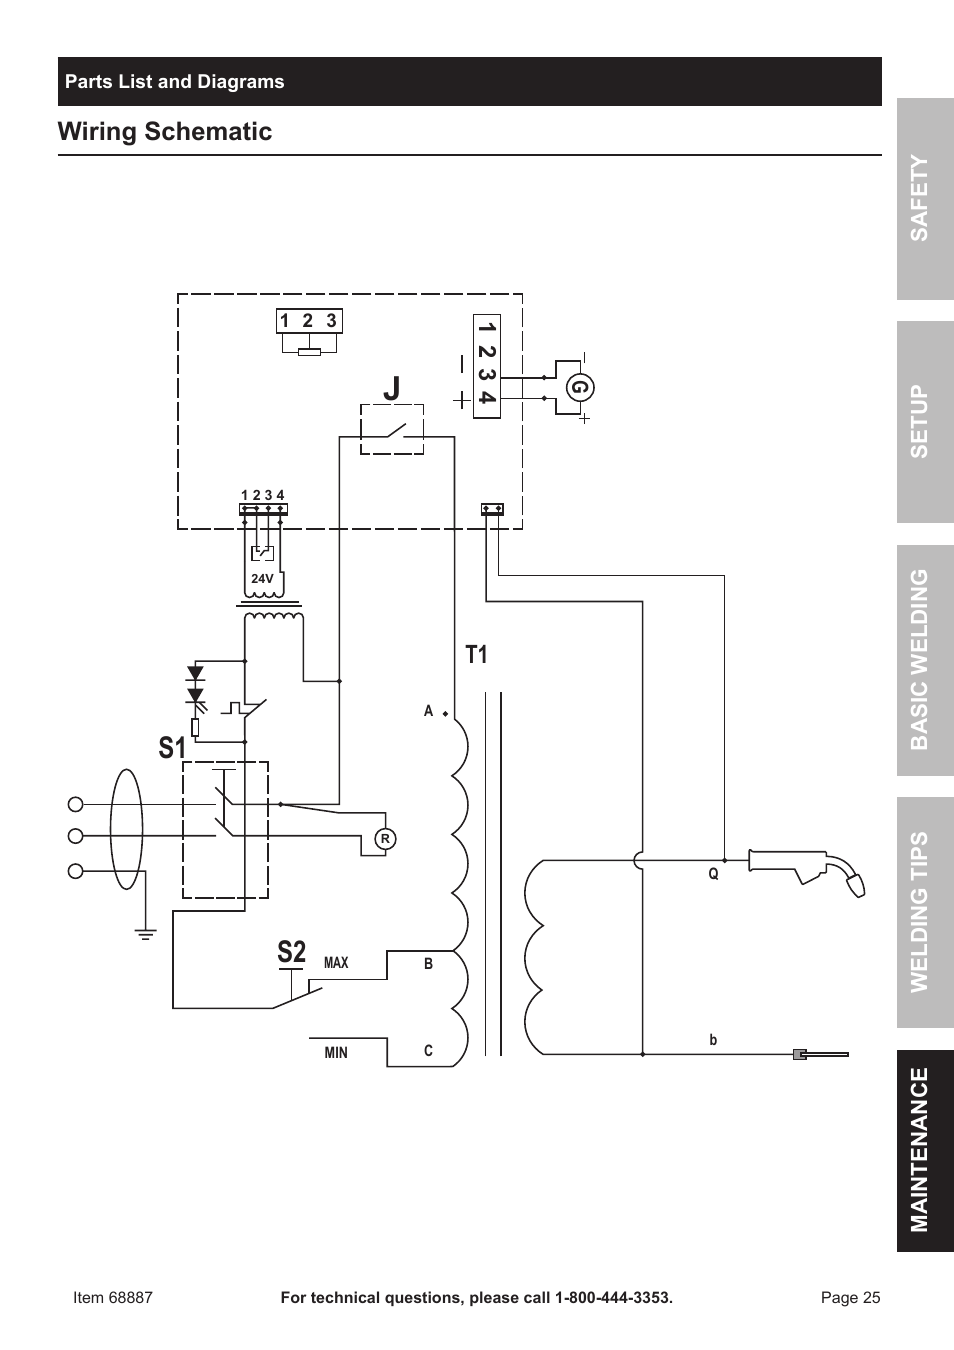 S2 s1, Wiring schematic | Chicago Electric 90 AMP FLUX WIRE WELDER ...